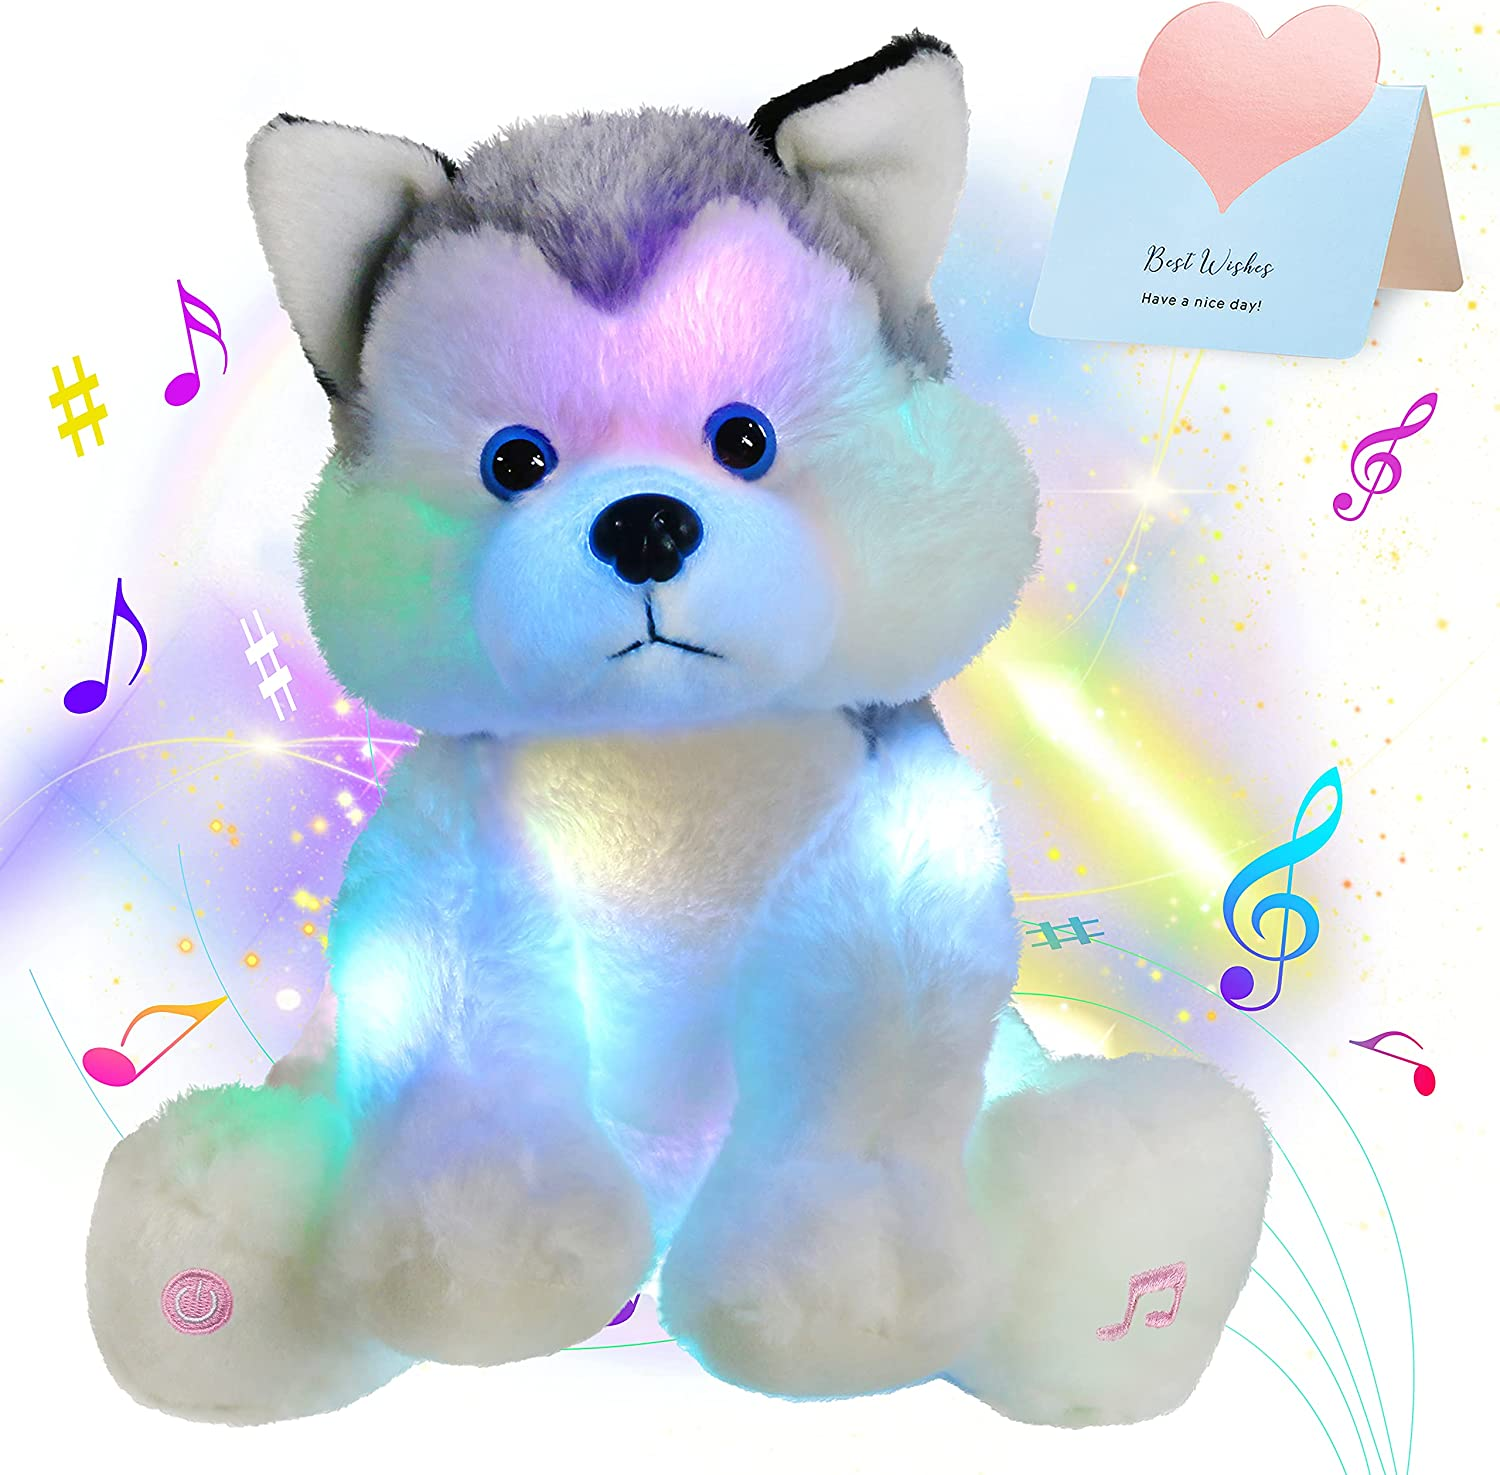 Houwsbaby Light Up Musical Stuffed Glowing LED Husky Dog Singing New Shipping Super beauty product restock quality top! Free